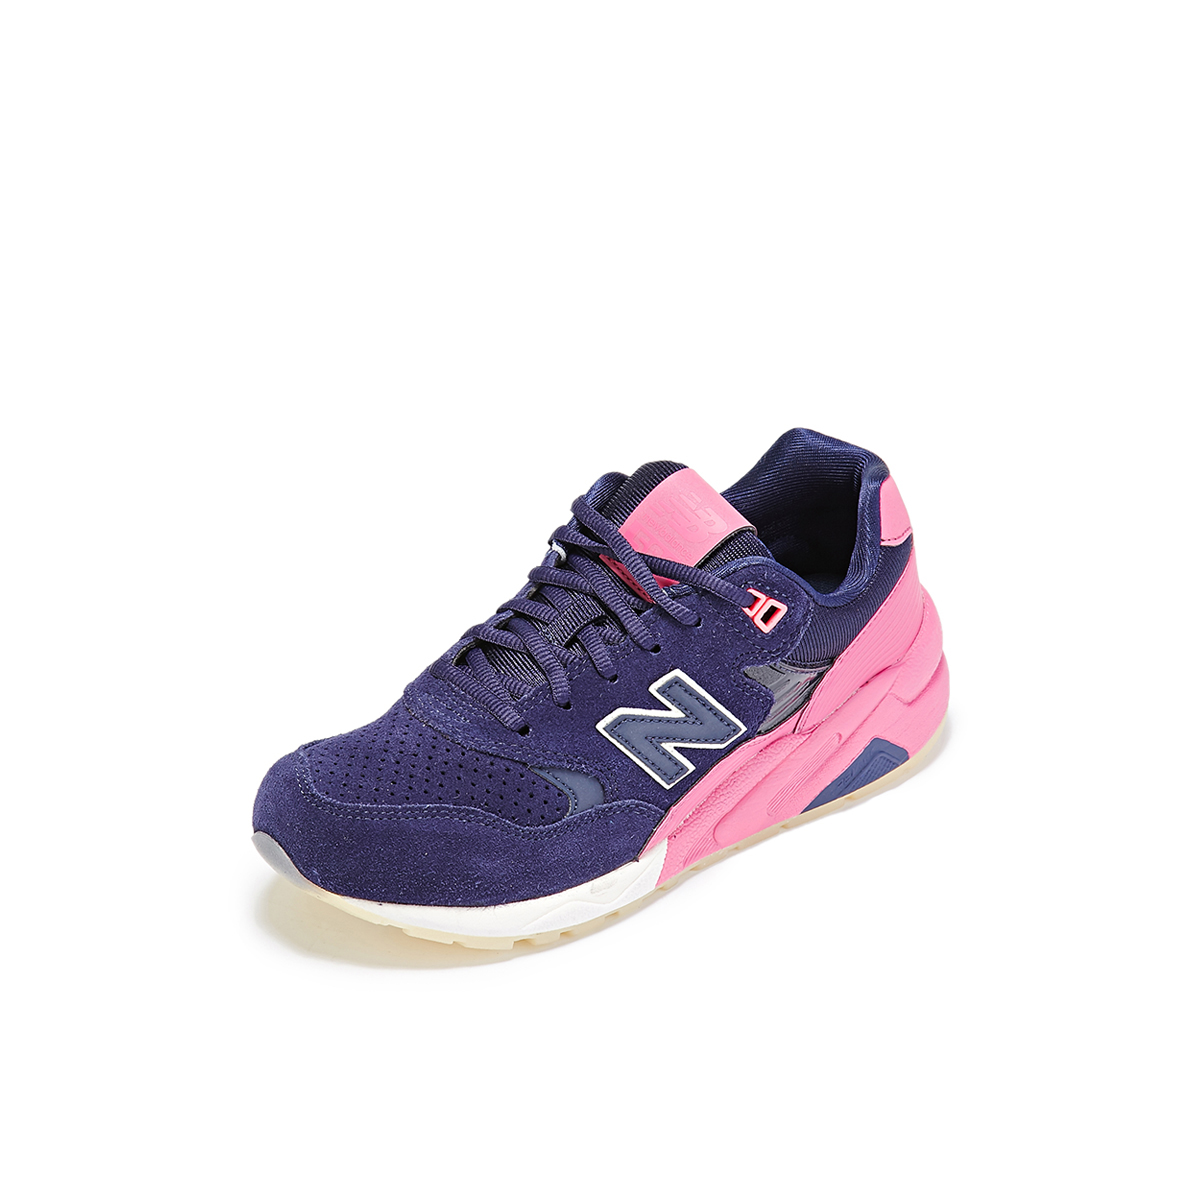 New balance neutral cool and comfortable breathable sports shoes